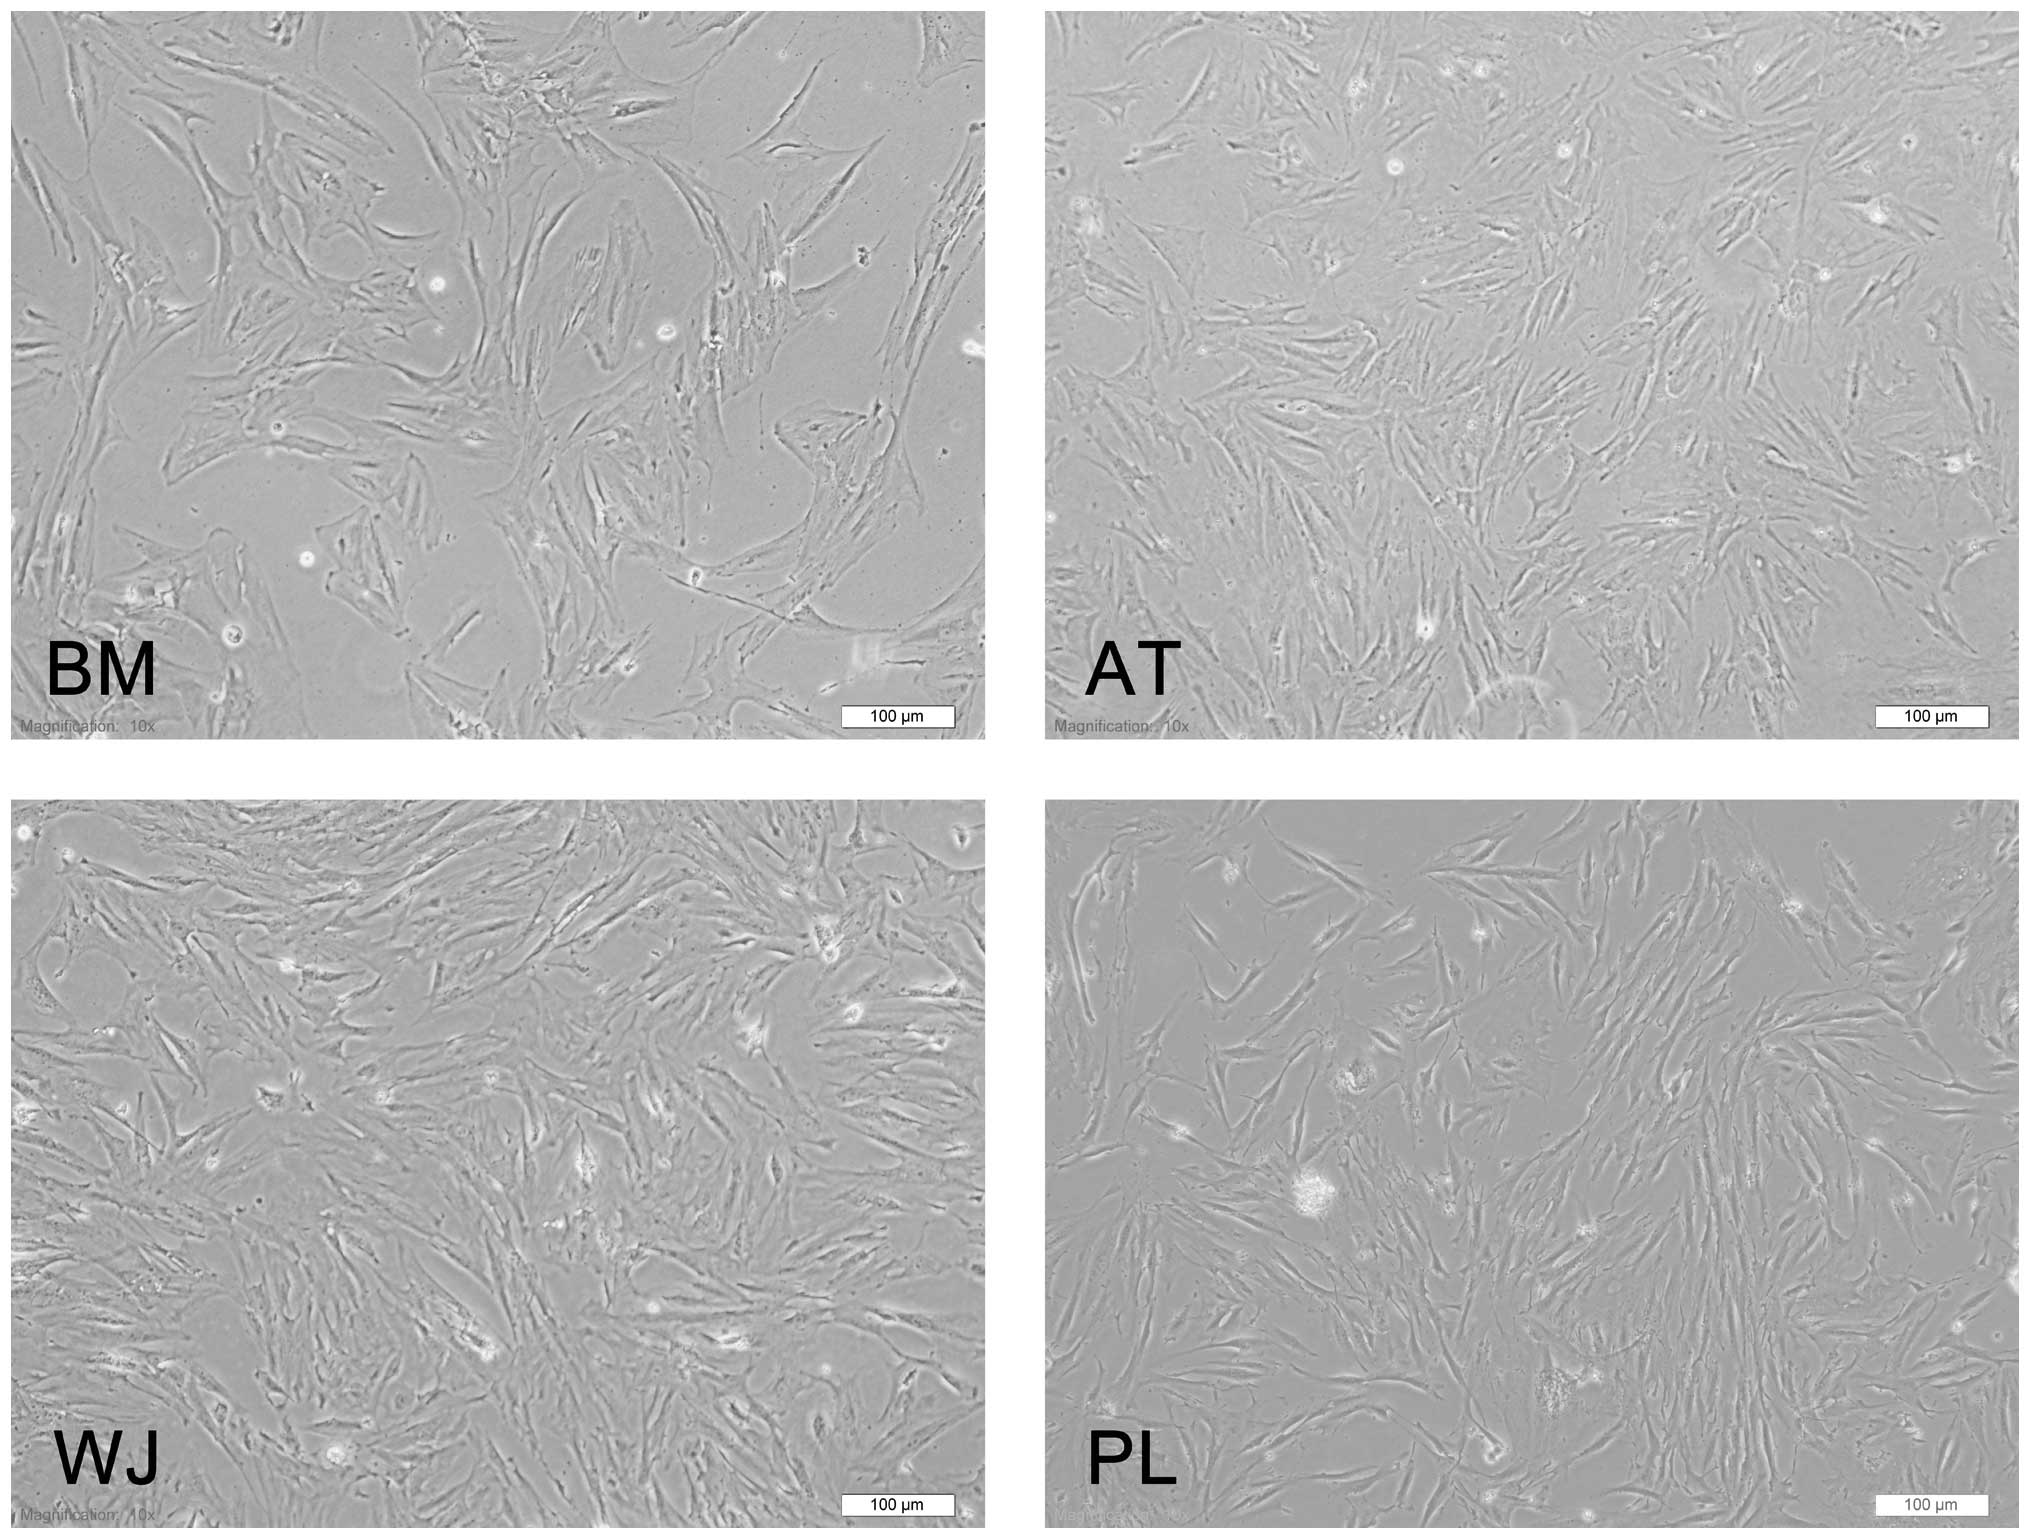 Comprehensive Characterization Of Four Different Populations Of Human Mesenchymal Stem Cells As